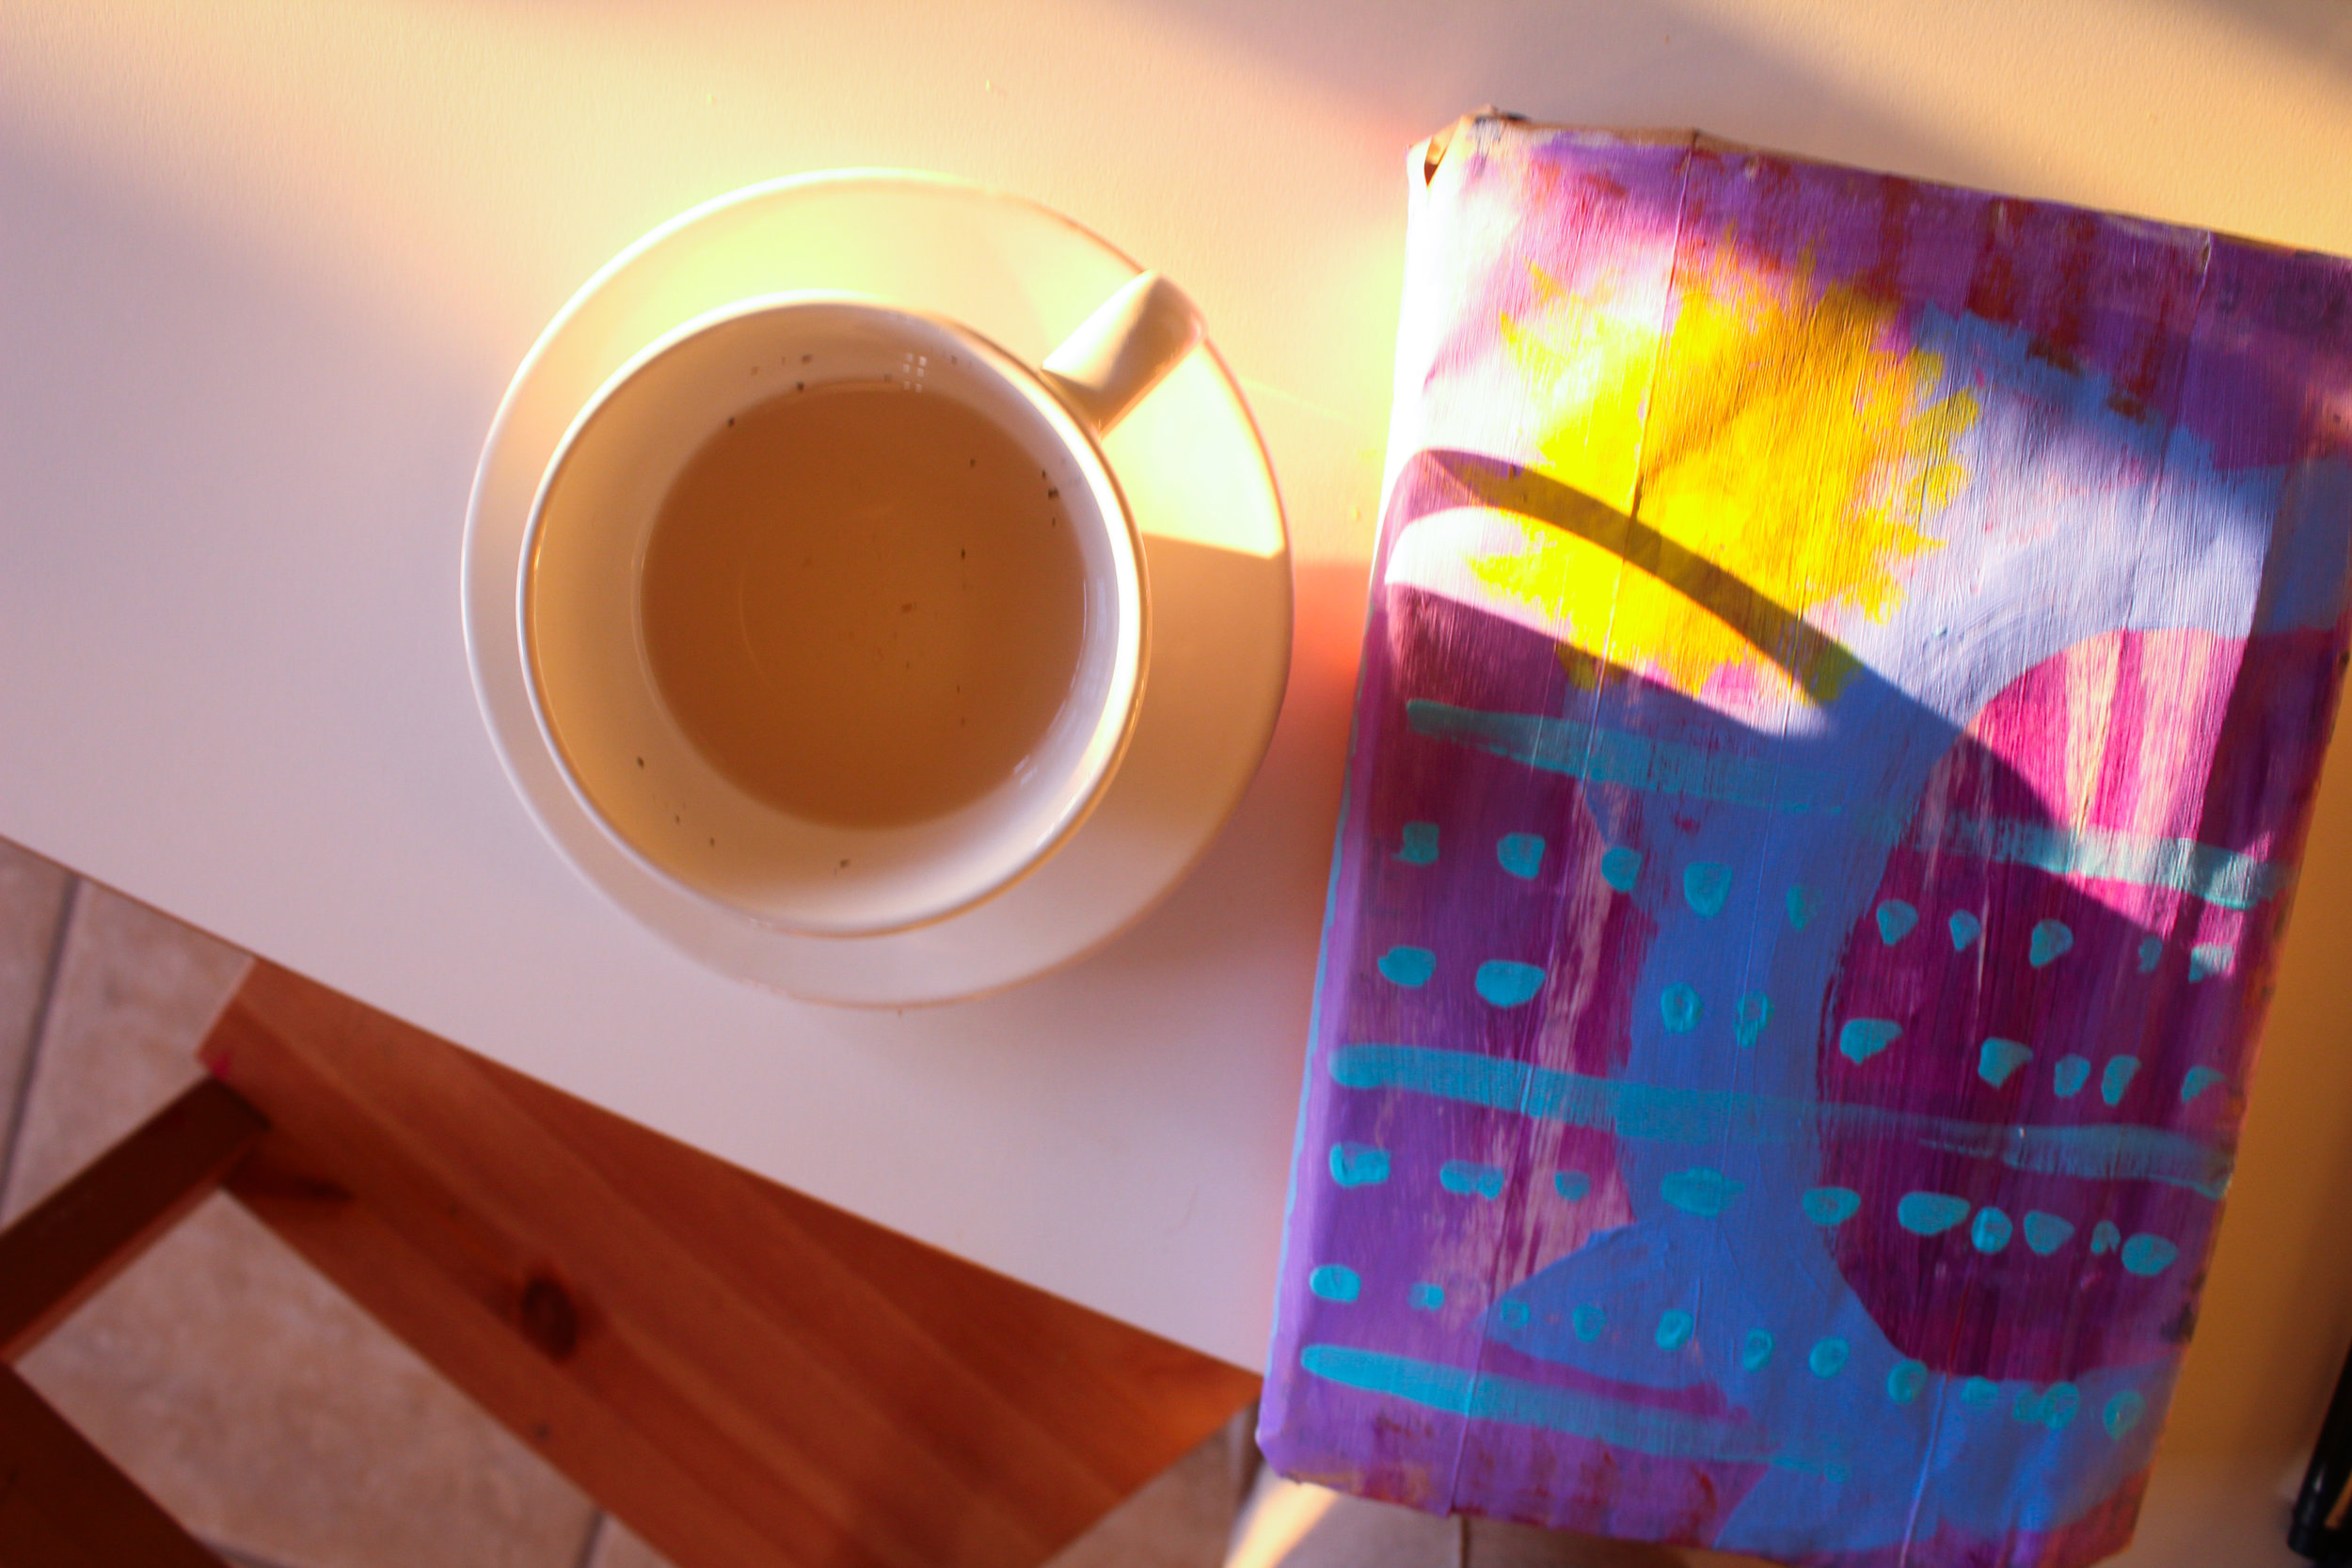 hand painted journal cover made with a paper bag from the local grocery + tea